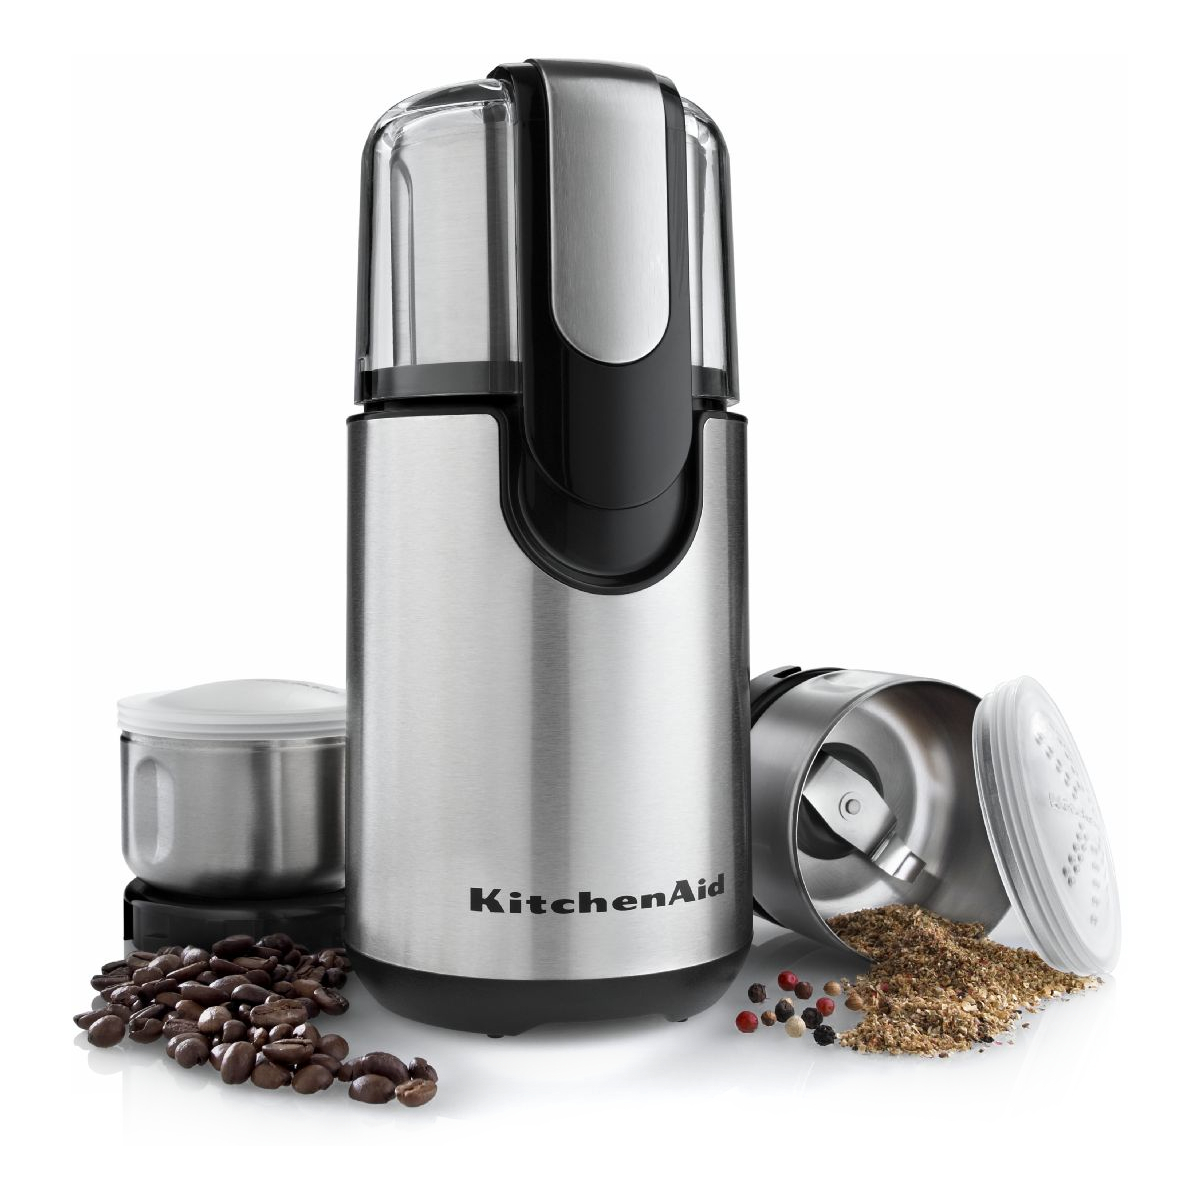 KitchenAid Stainless Steel Coffee and Spice Grinder